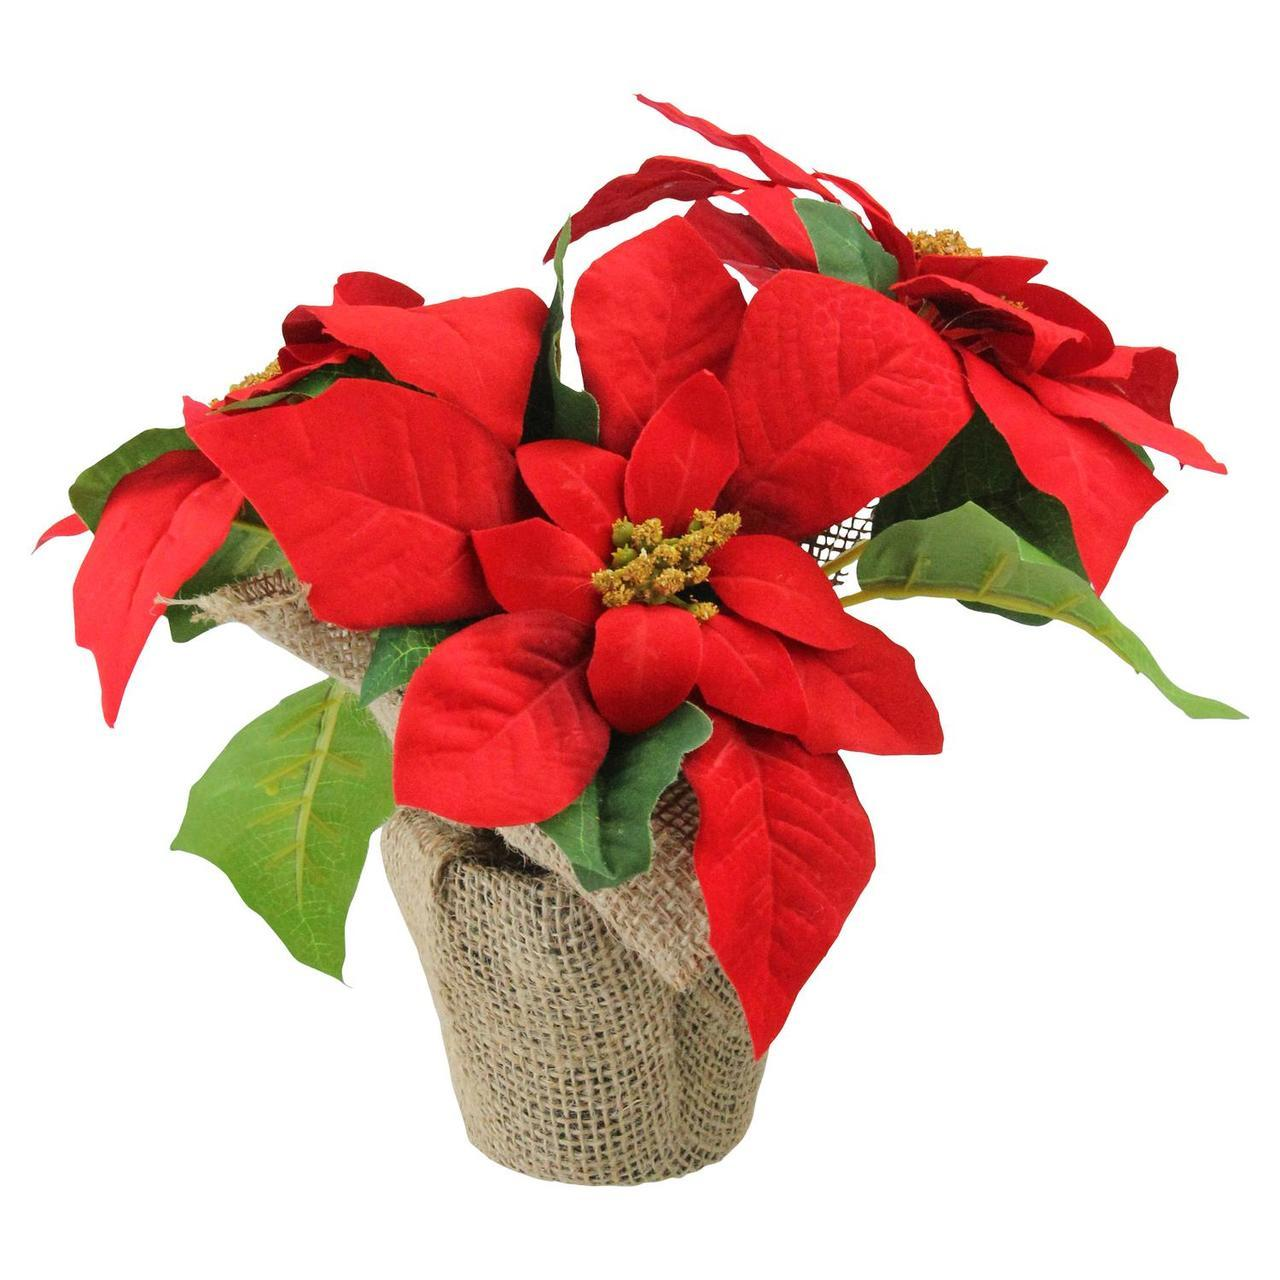 Poinsettia Flower Pictures